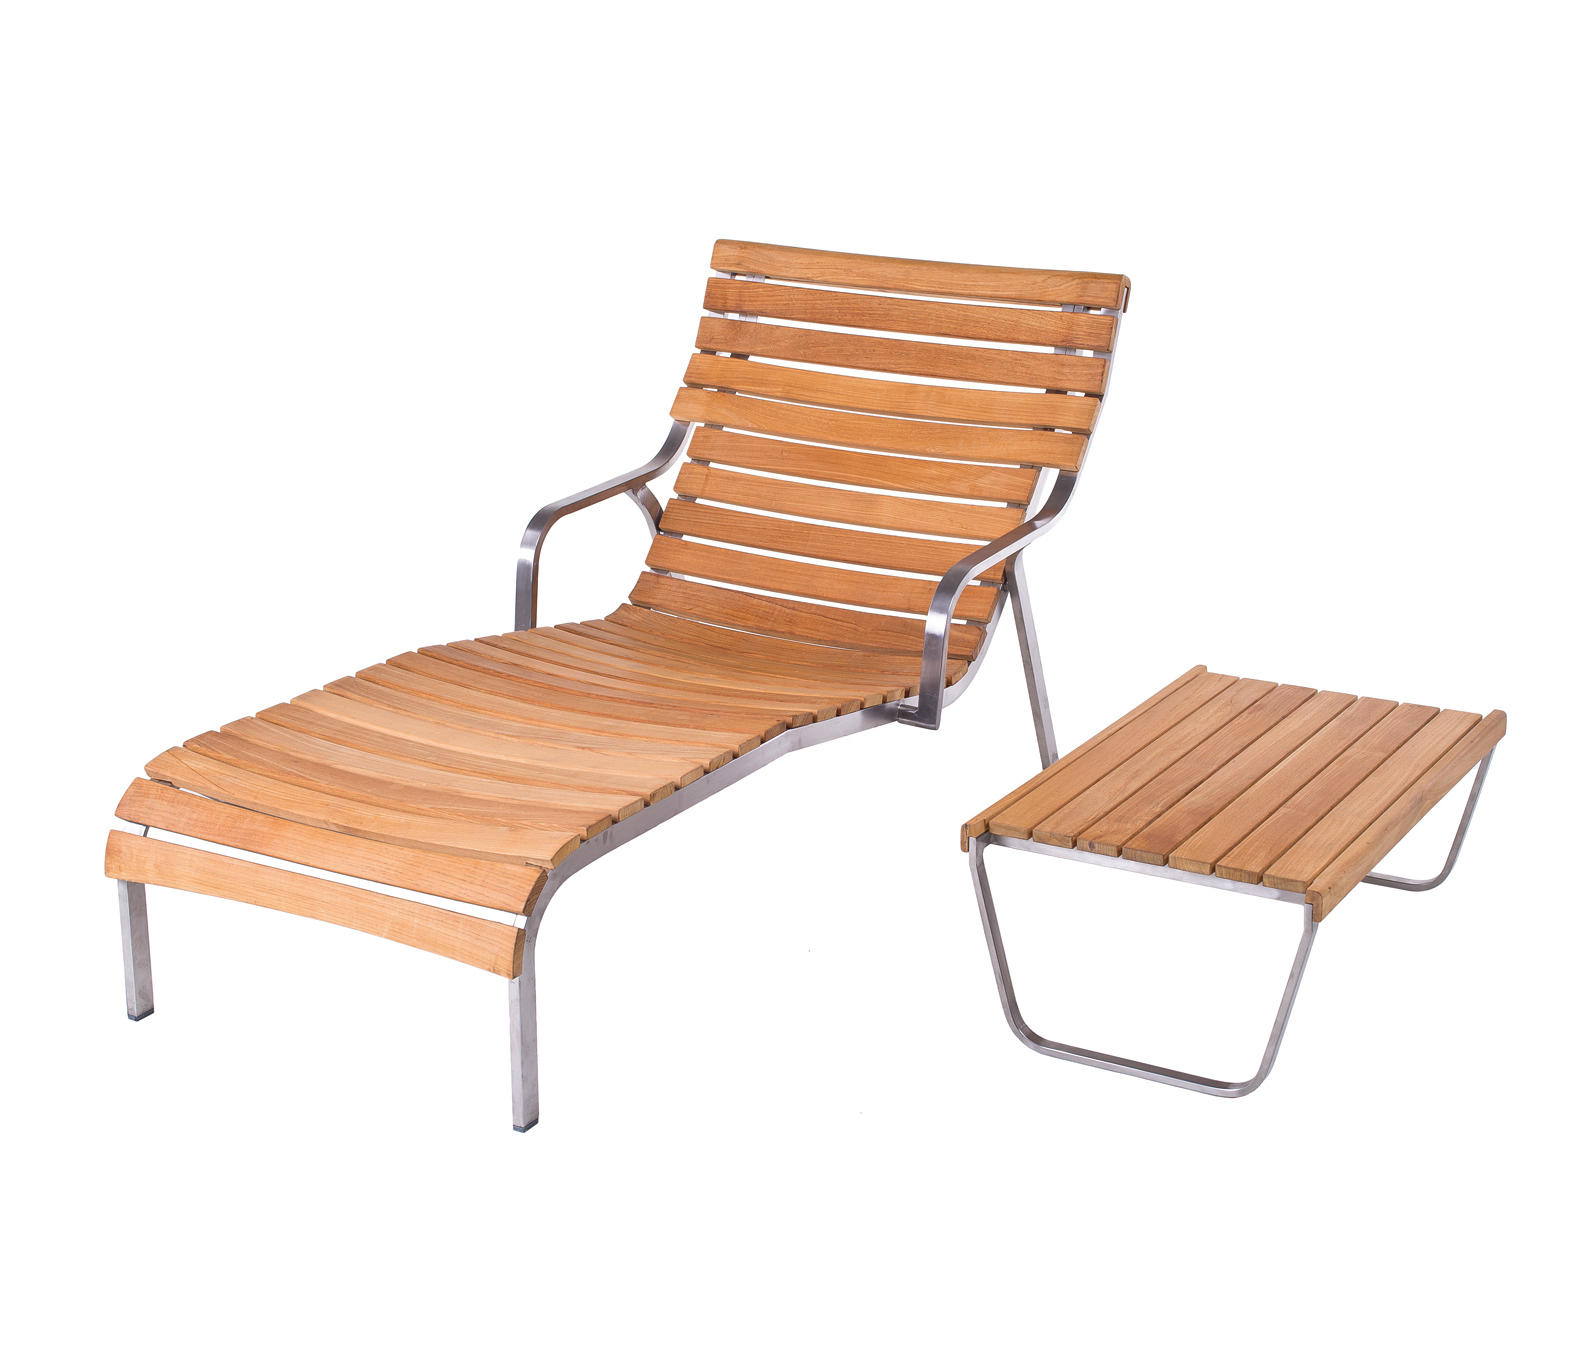 Equinox chaise longue sun loungers from unopi architonic for Chaise longue manufacturers